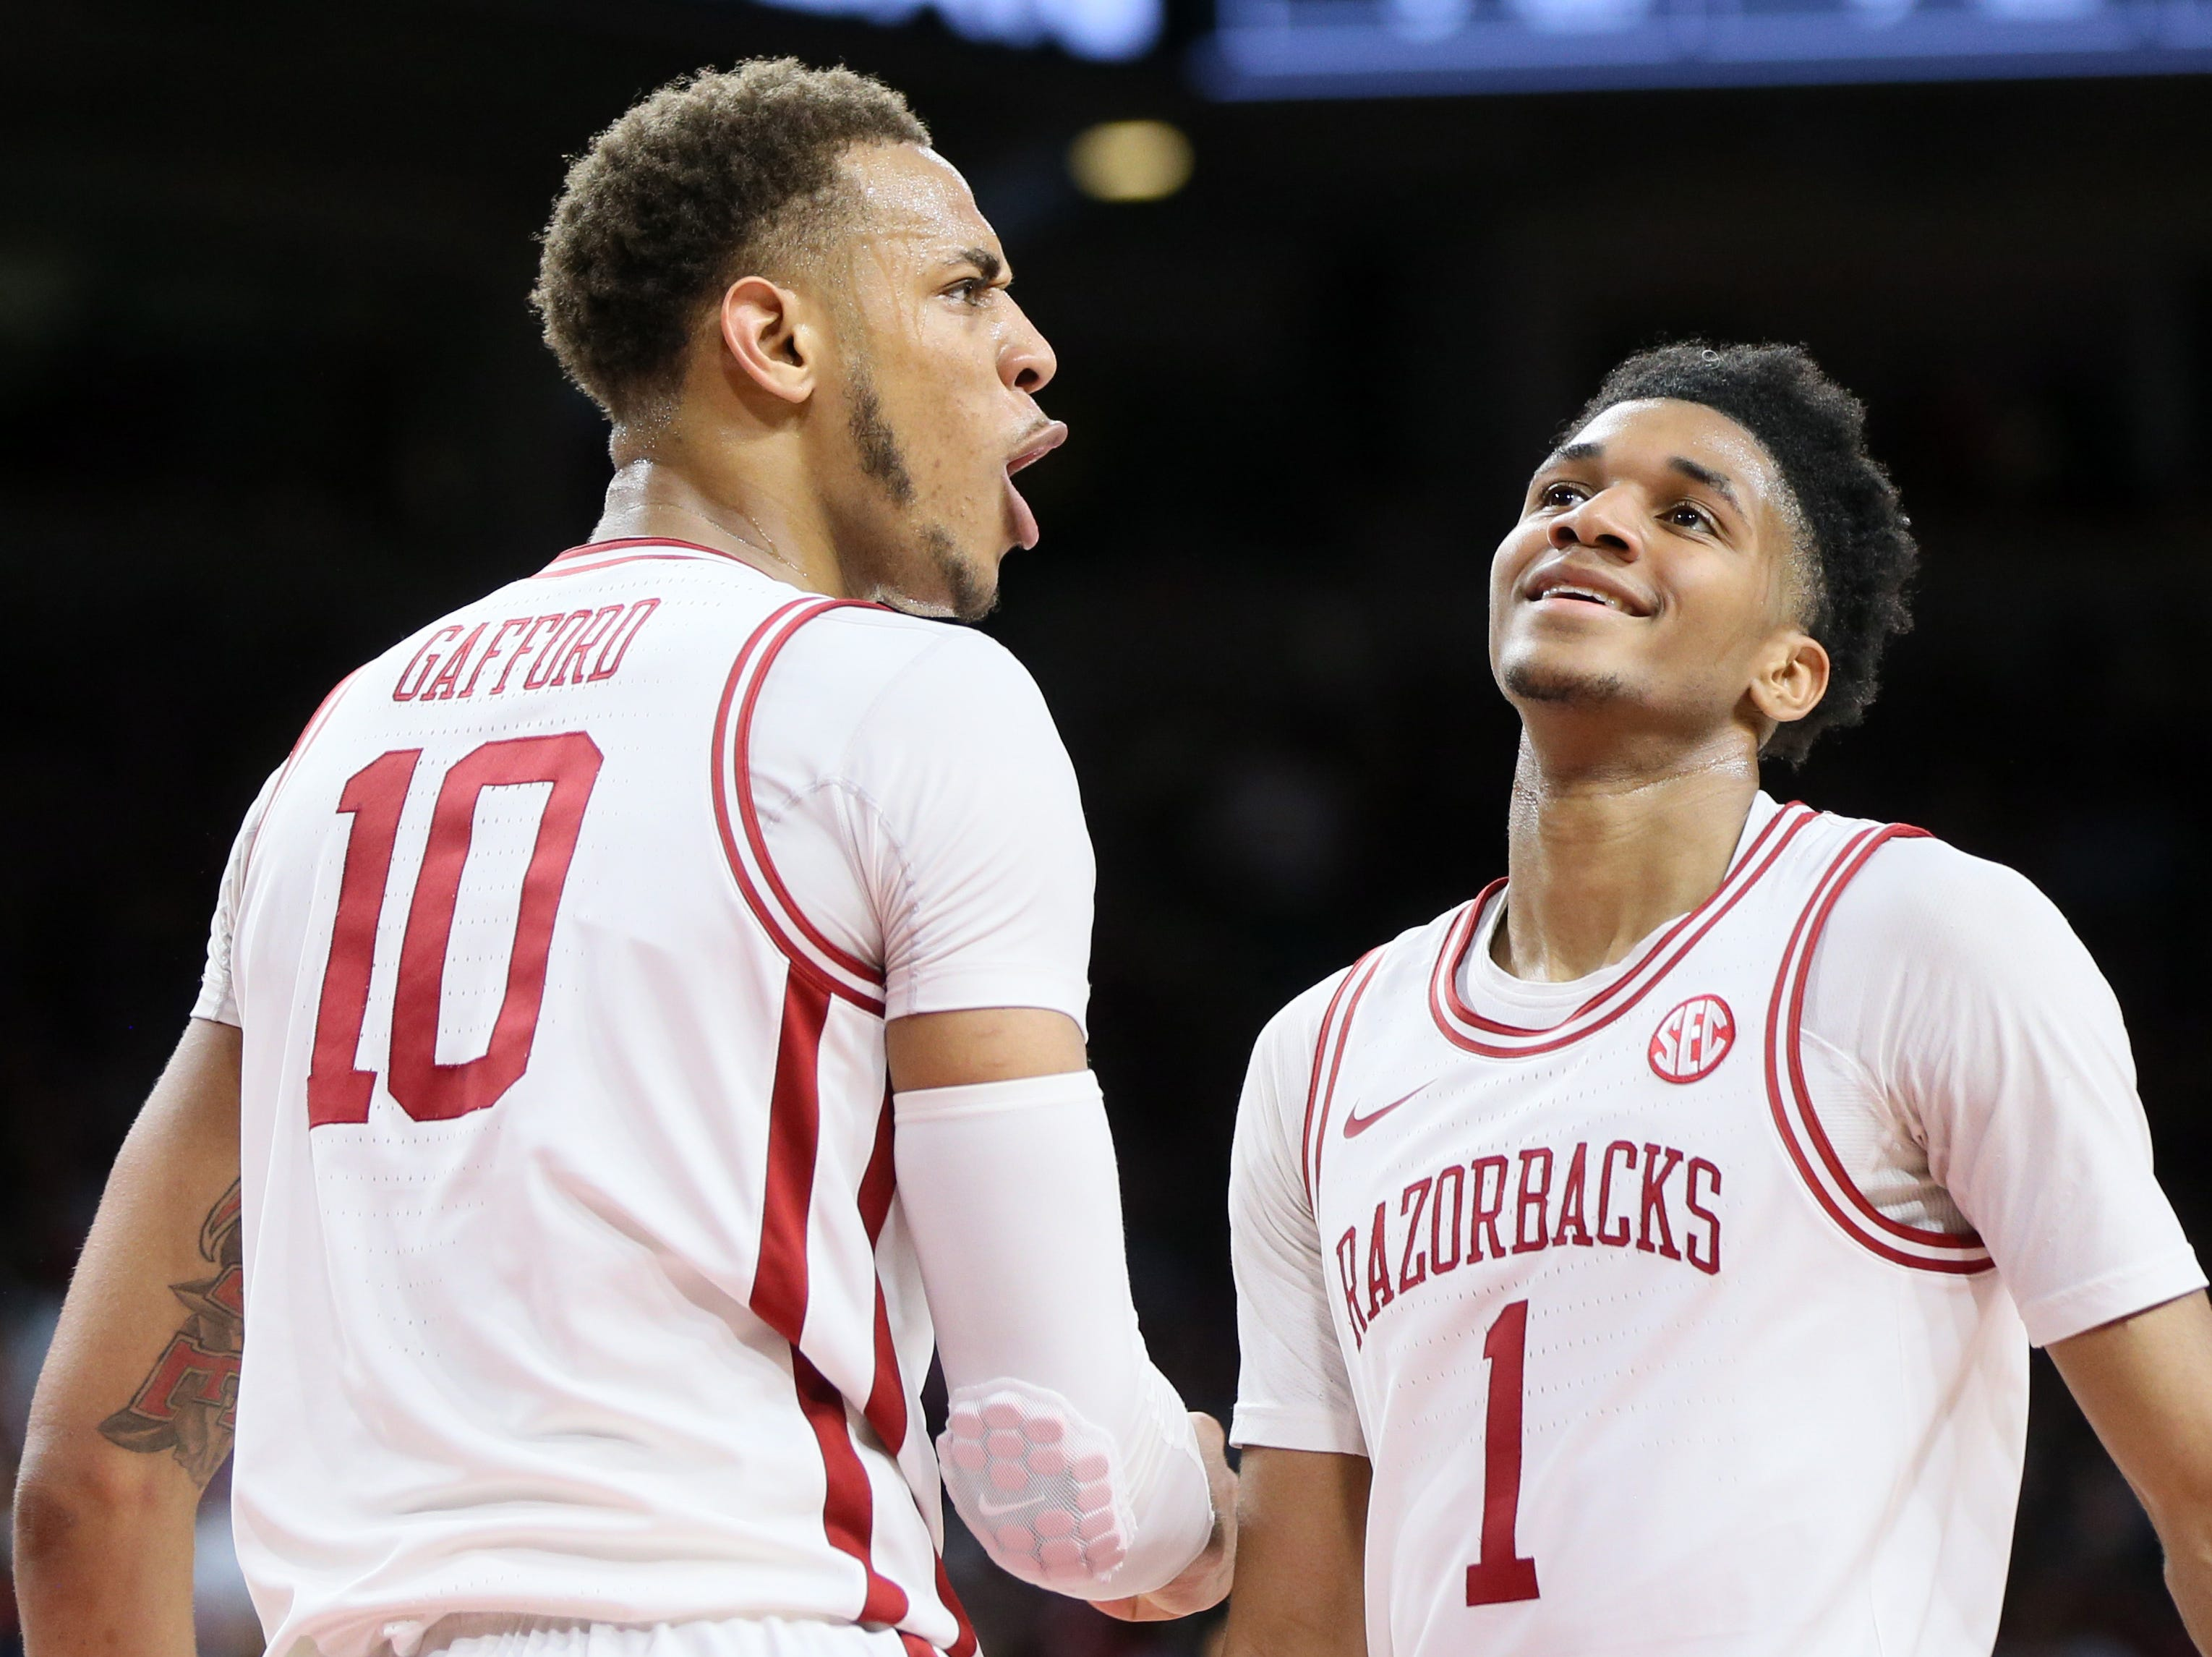 Mar 9, 2019; Fayetteville, AR, USA; Arkansas Razorbacks forward Daniel Gafford (10) reacts after being called for a foul as guard Isaiah Joe (1) looks on during the first half against the Alabama Crimson Tide at Bud Walton Arena. Mandatory Credit: Nelson Chenault-USA TODAY Sports